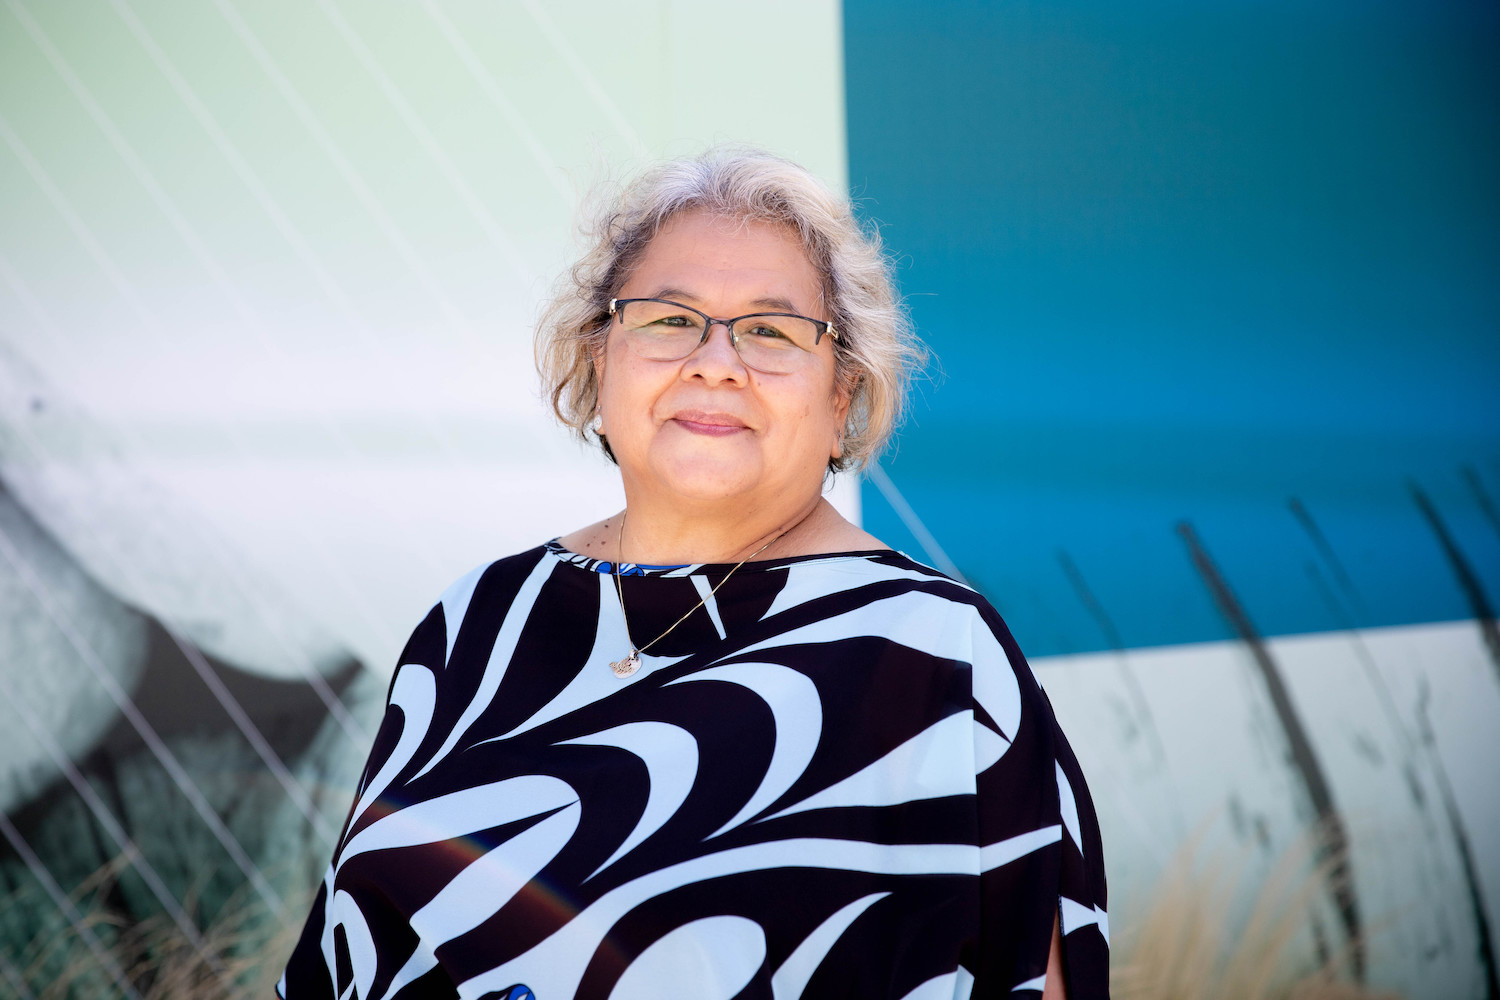 Carleen Thomas appointed Chancellor of Emily Carr University of Art + Design